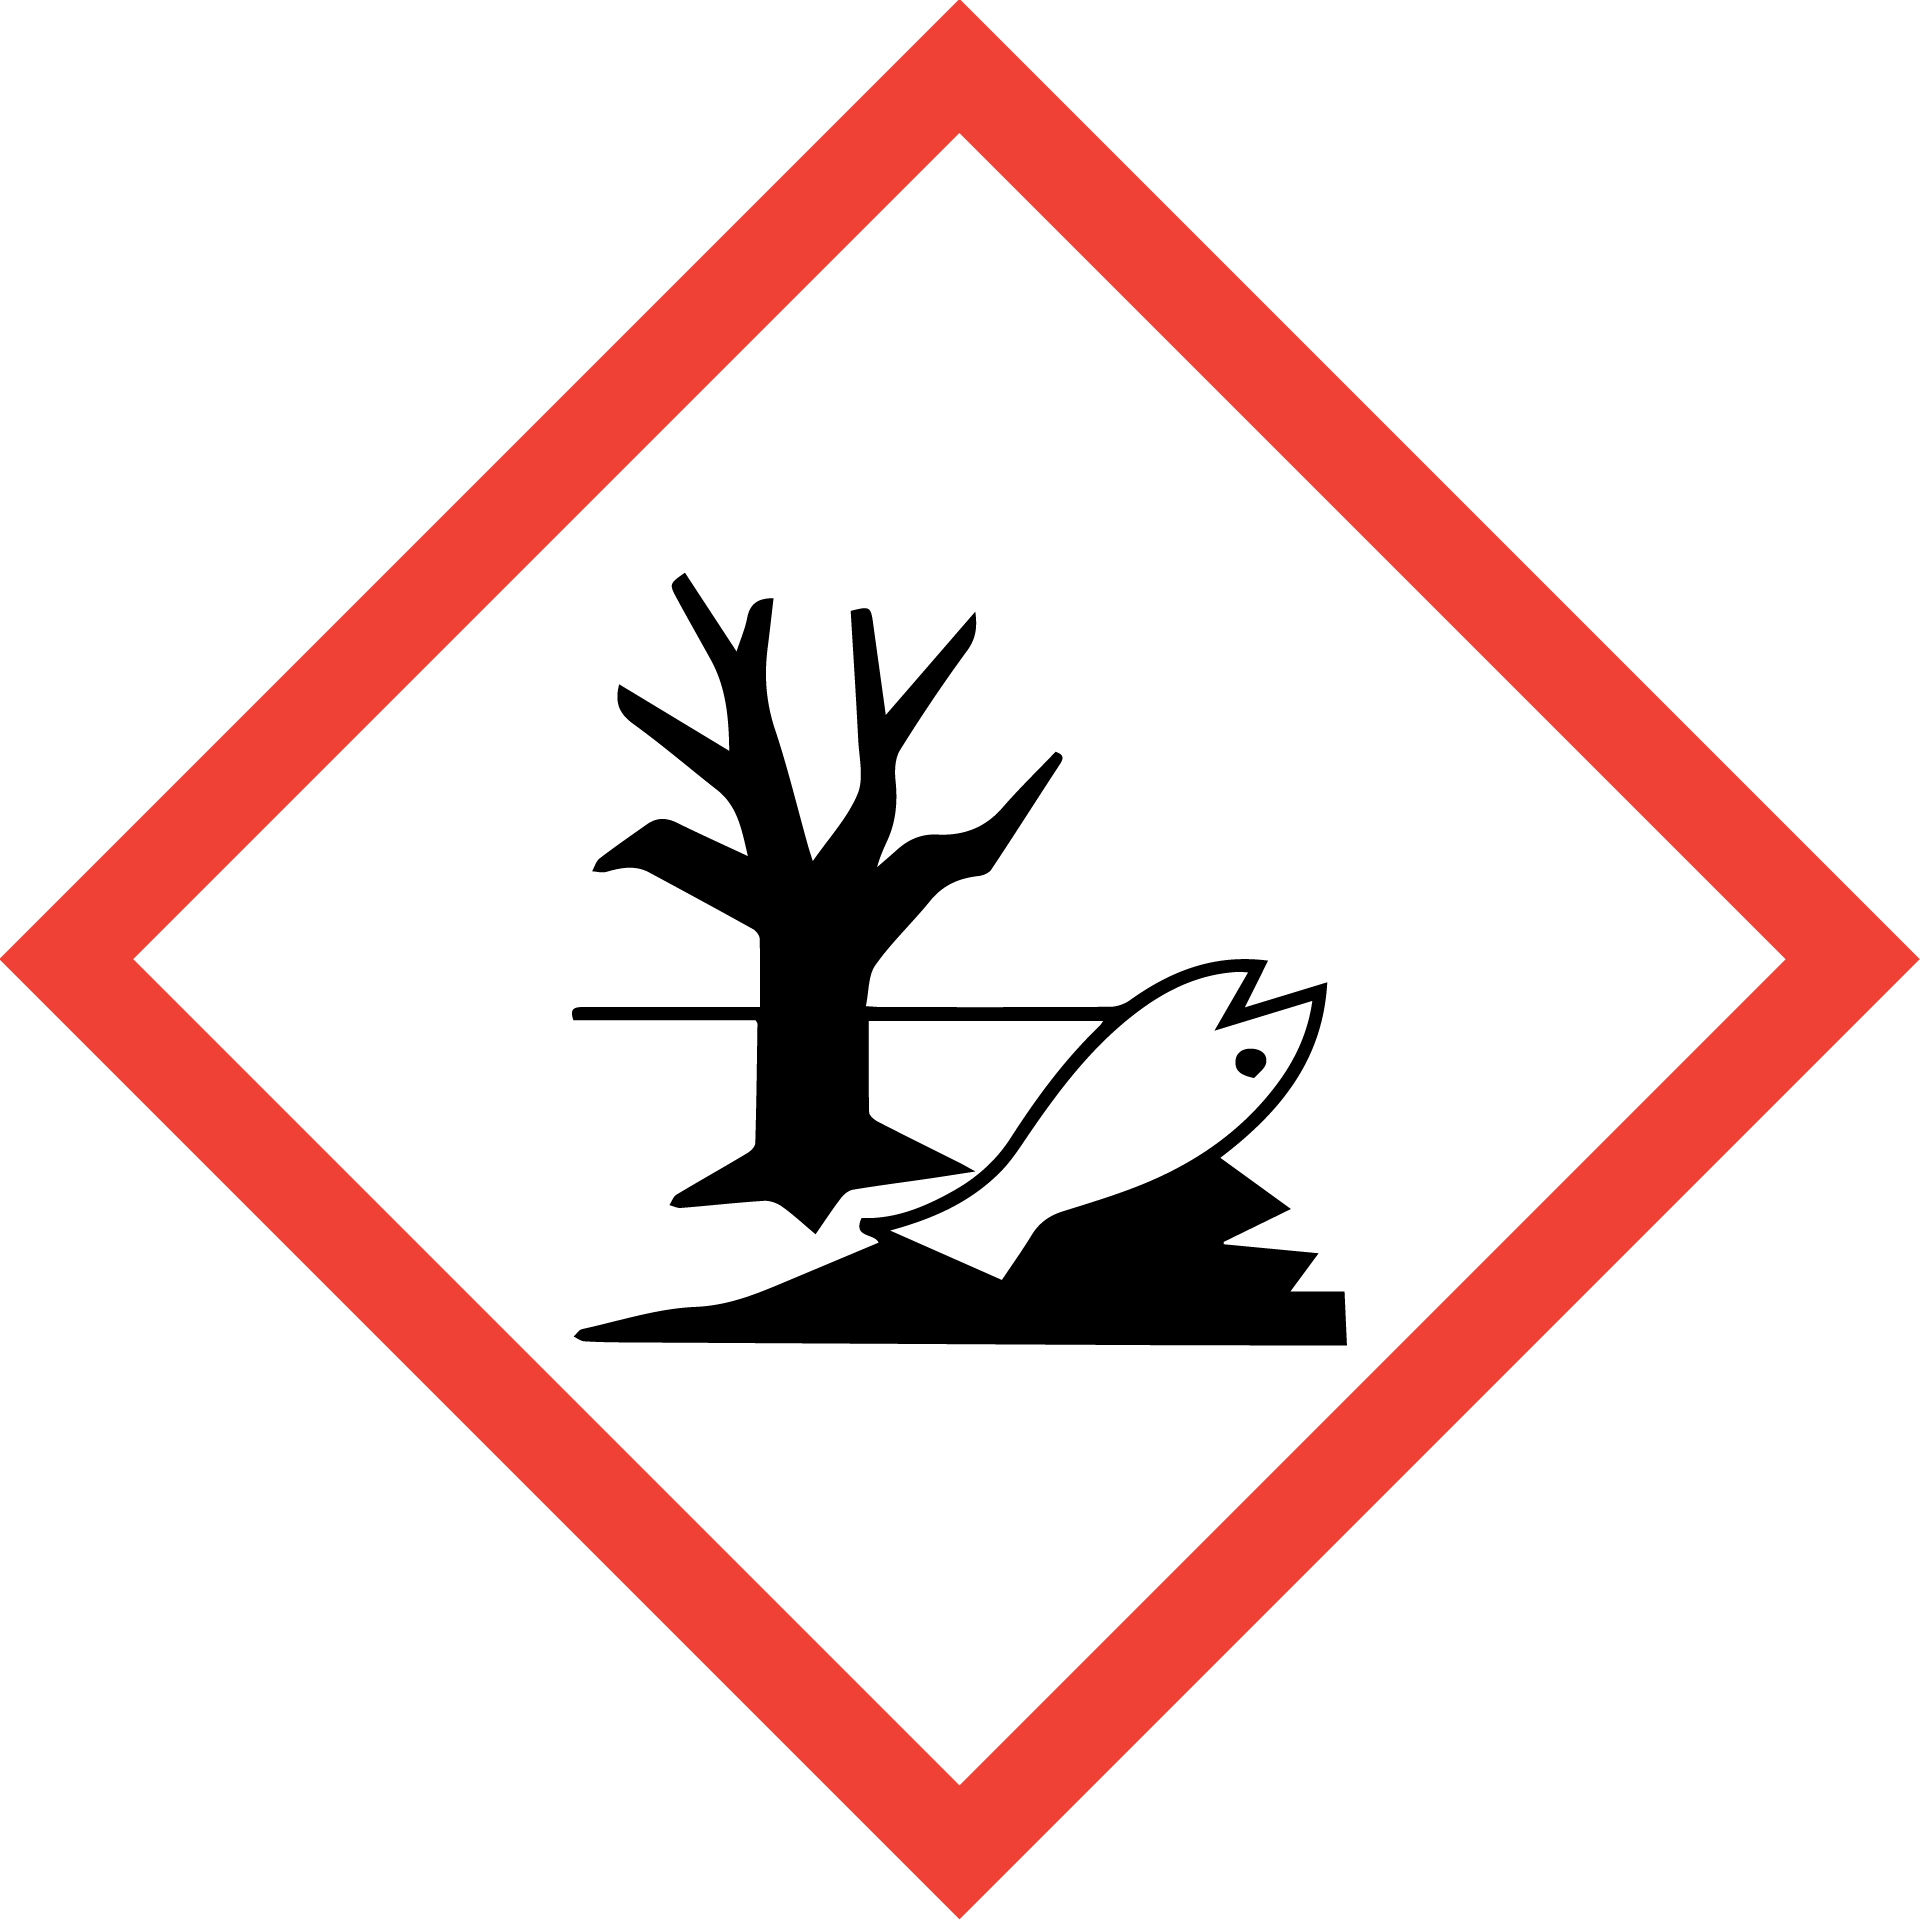 Chemical symbol for harmful to the environment